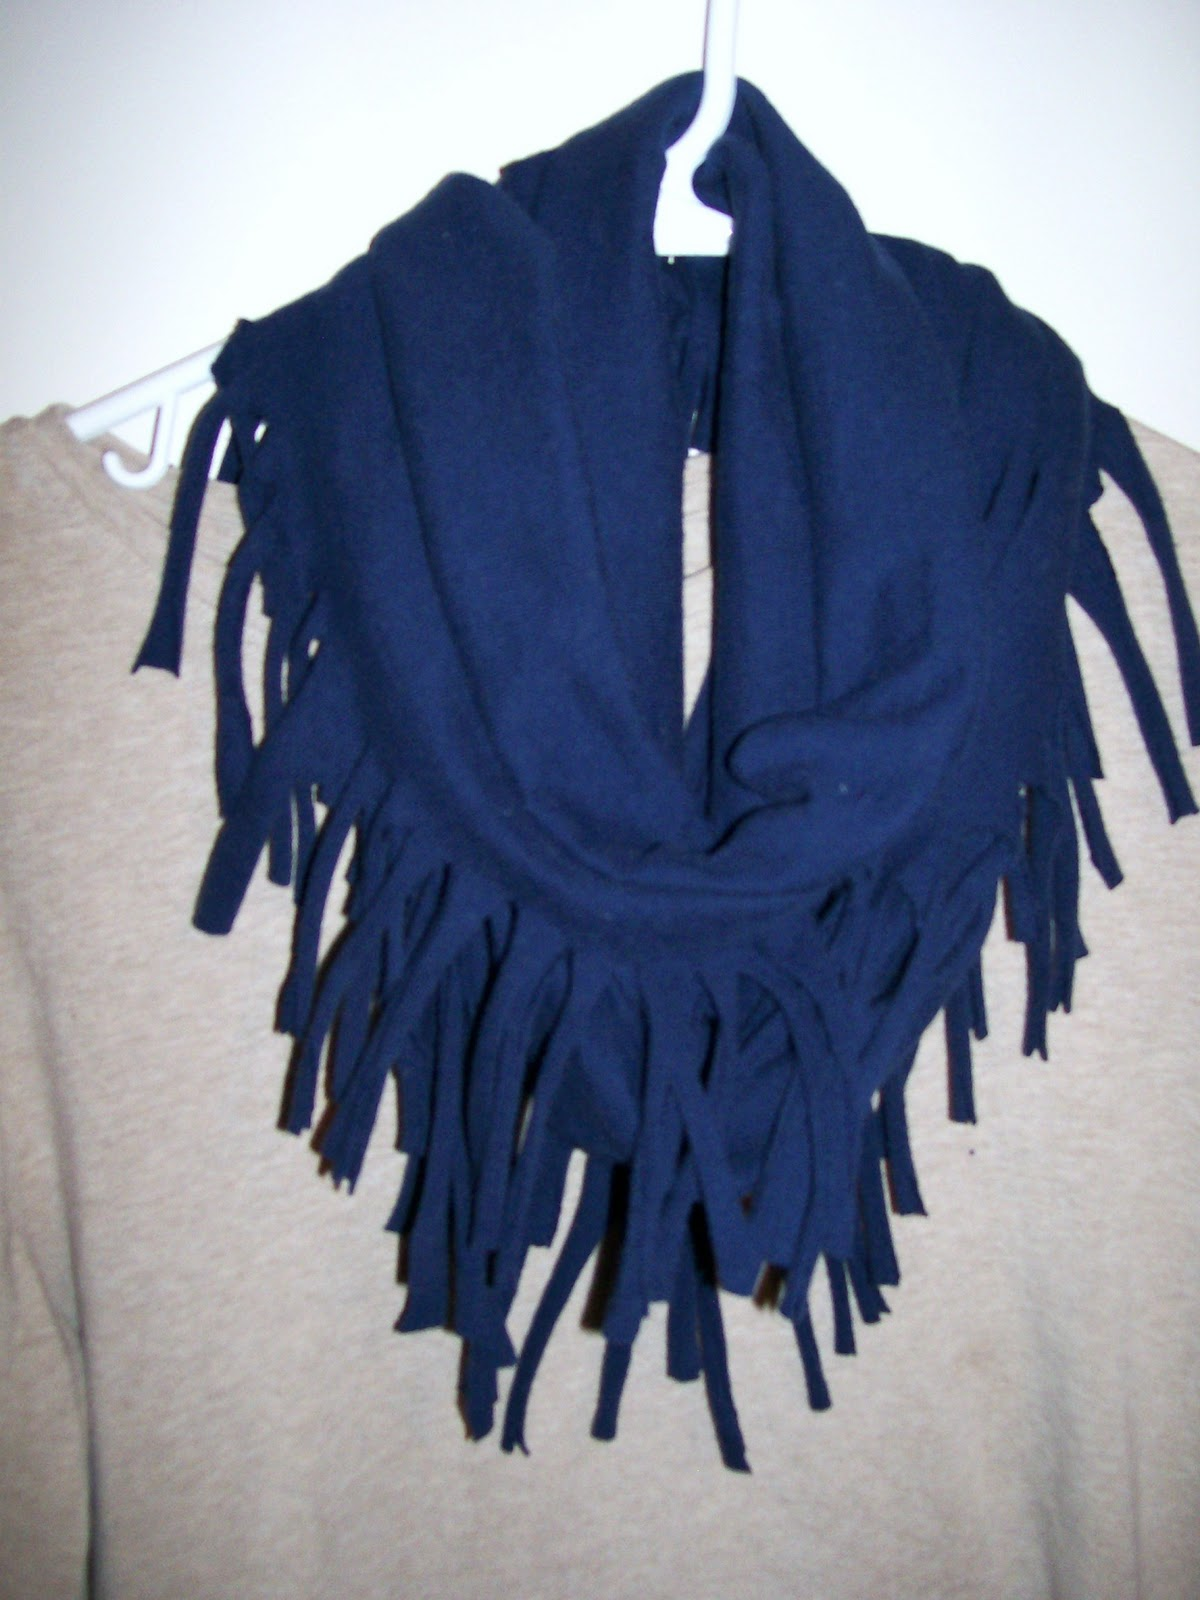 diy t shirt scarf 2 away from the office chair